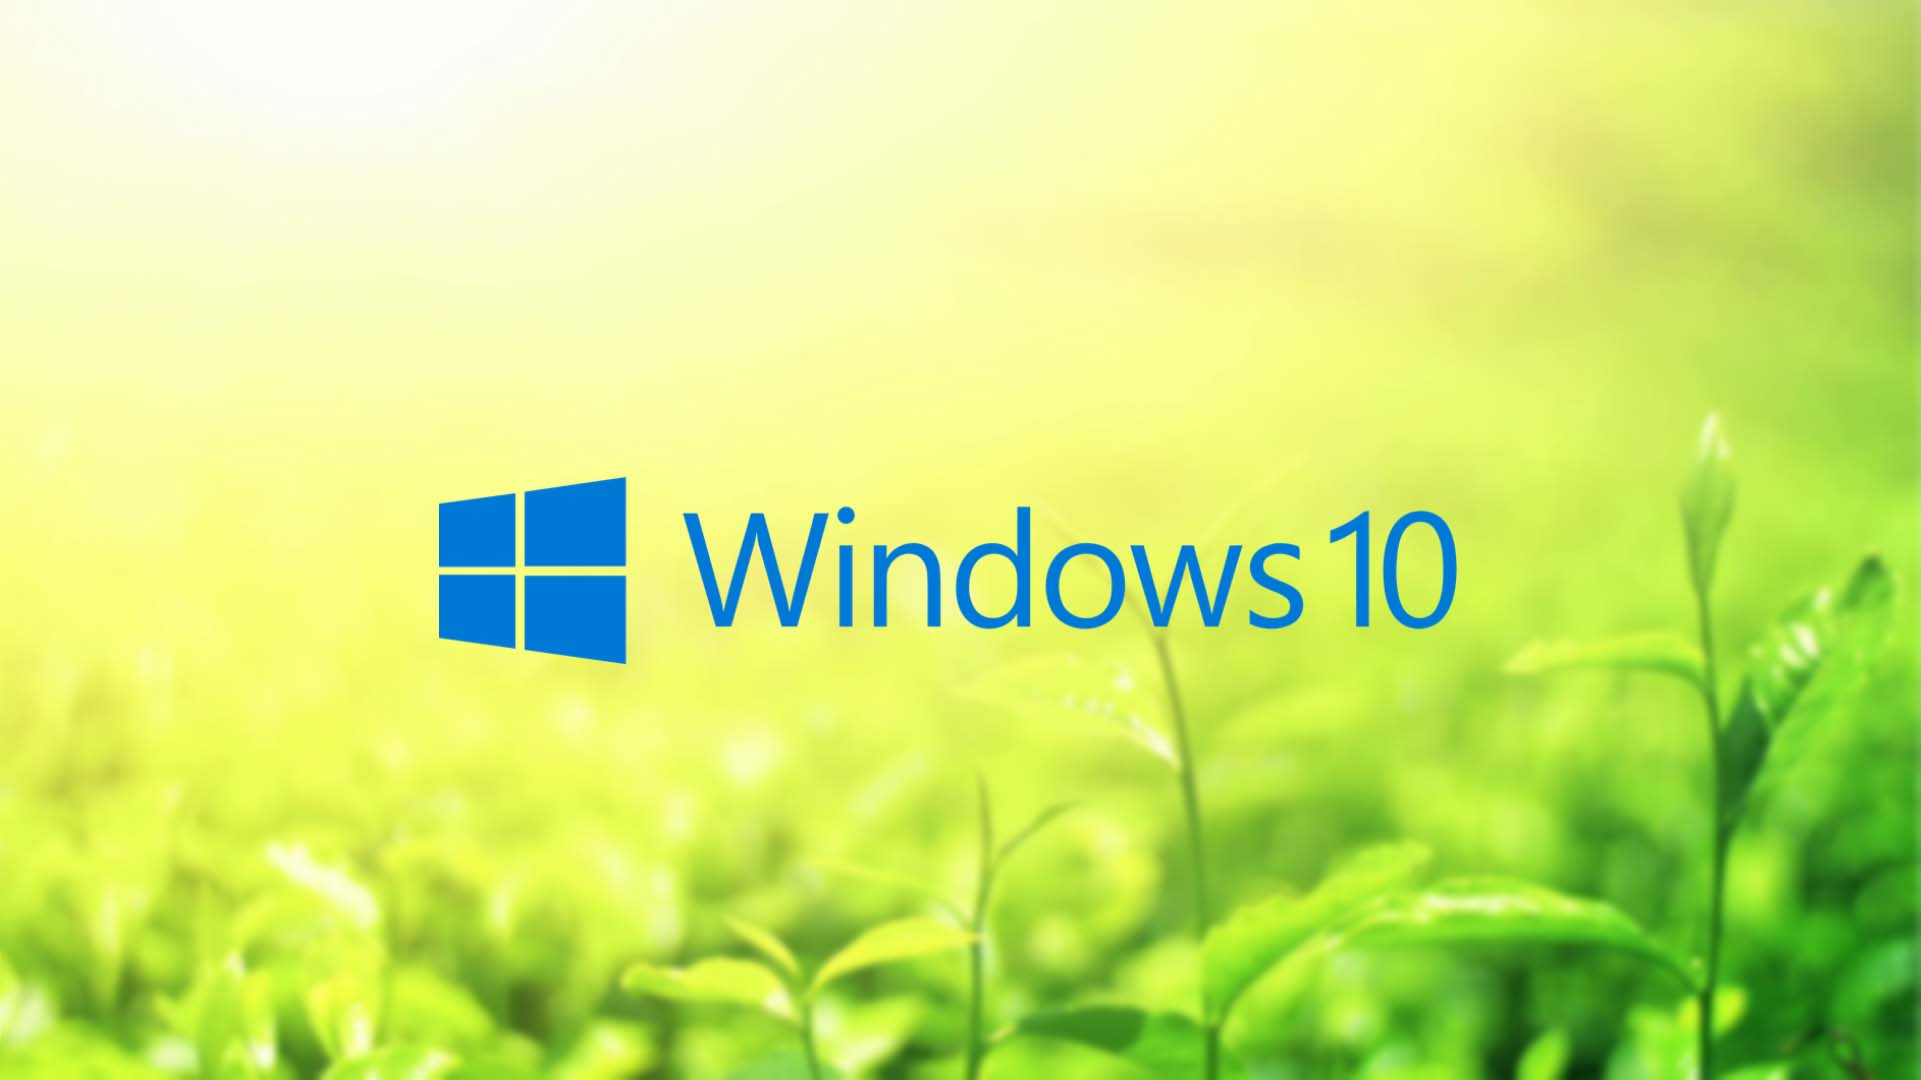 Windows 10 natural wallpaper